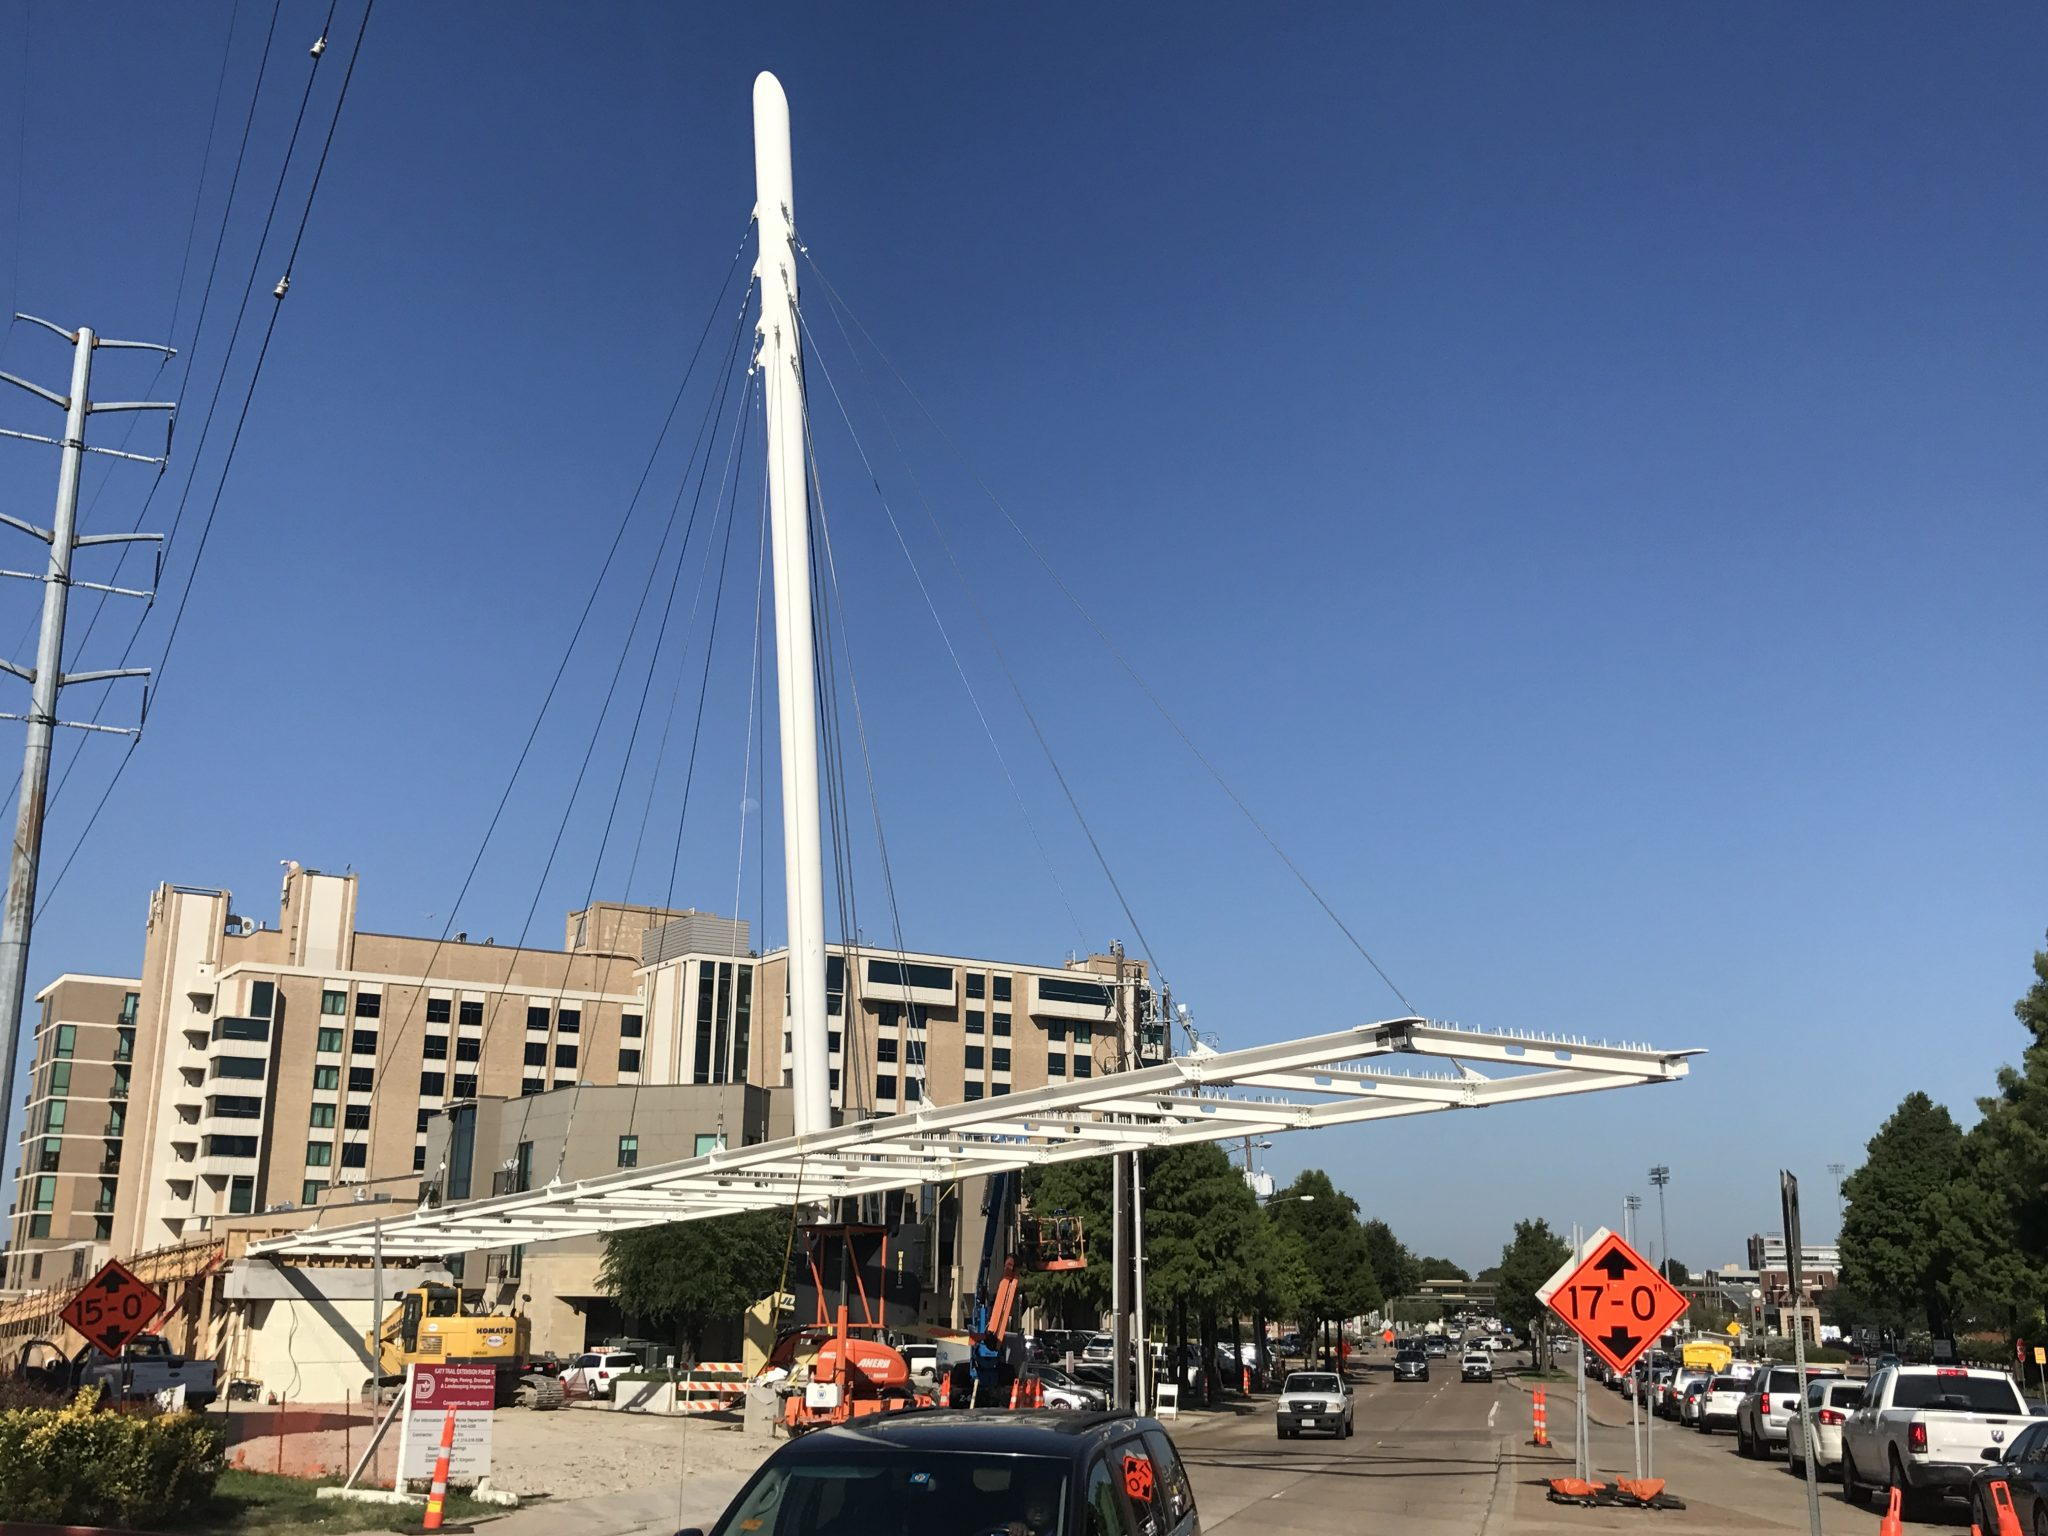 The final pieces of the pedestrian bridge at Mockingbird Station are following into place. (Photo by Advocate reader Jeff Snoyer)